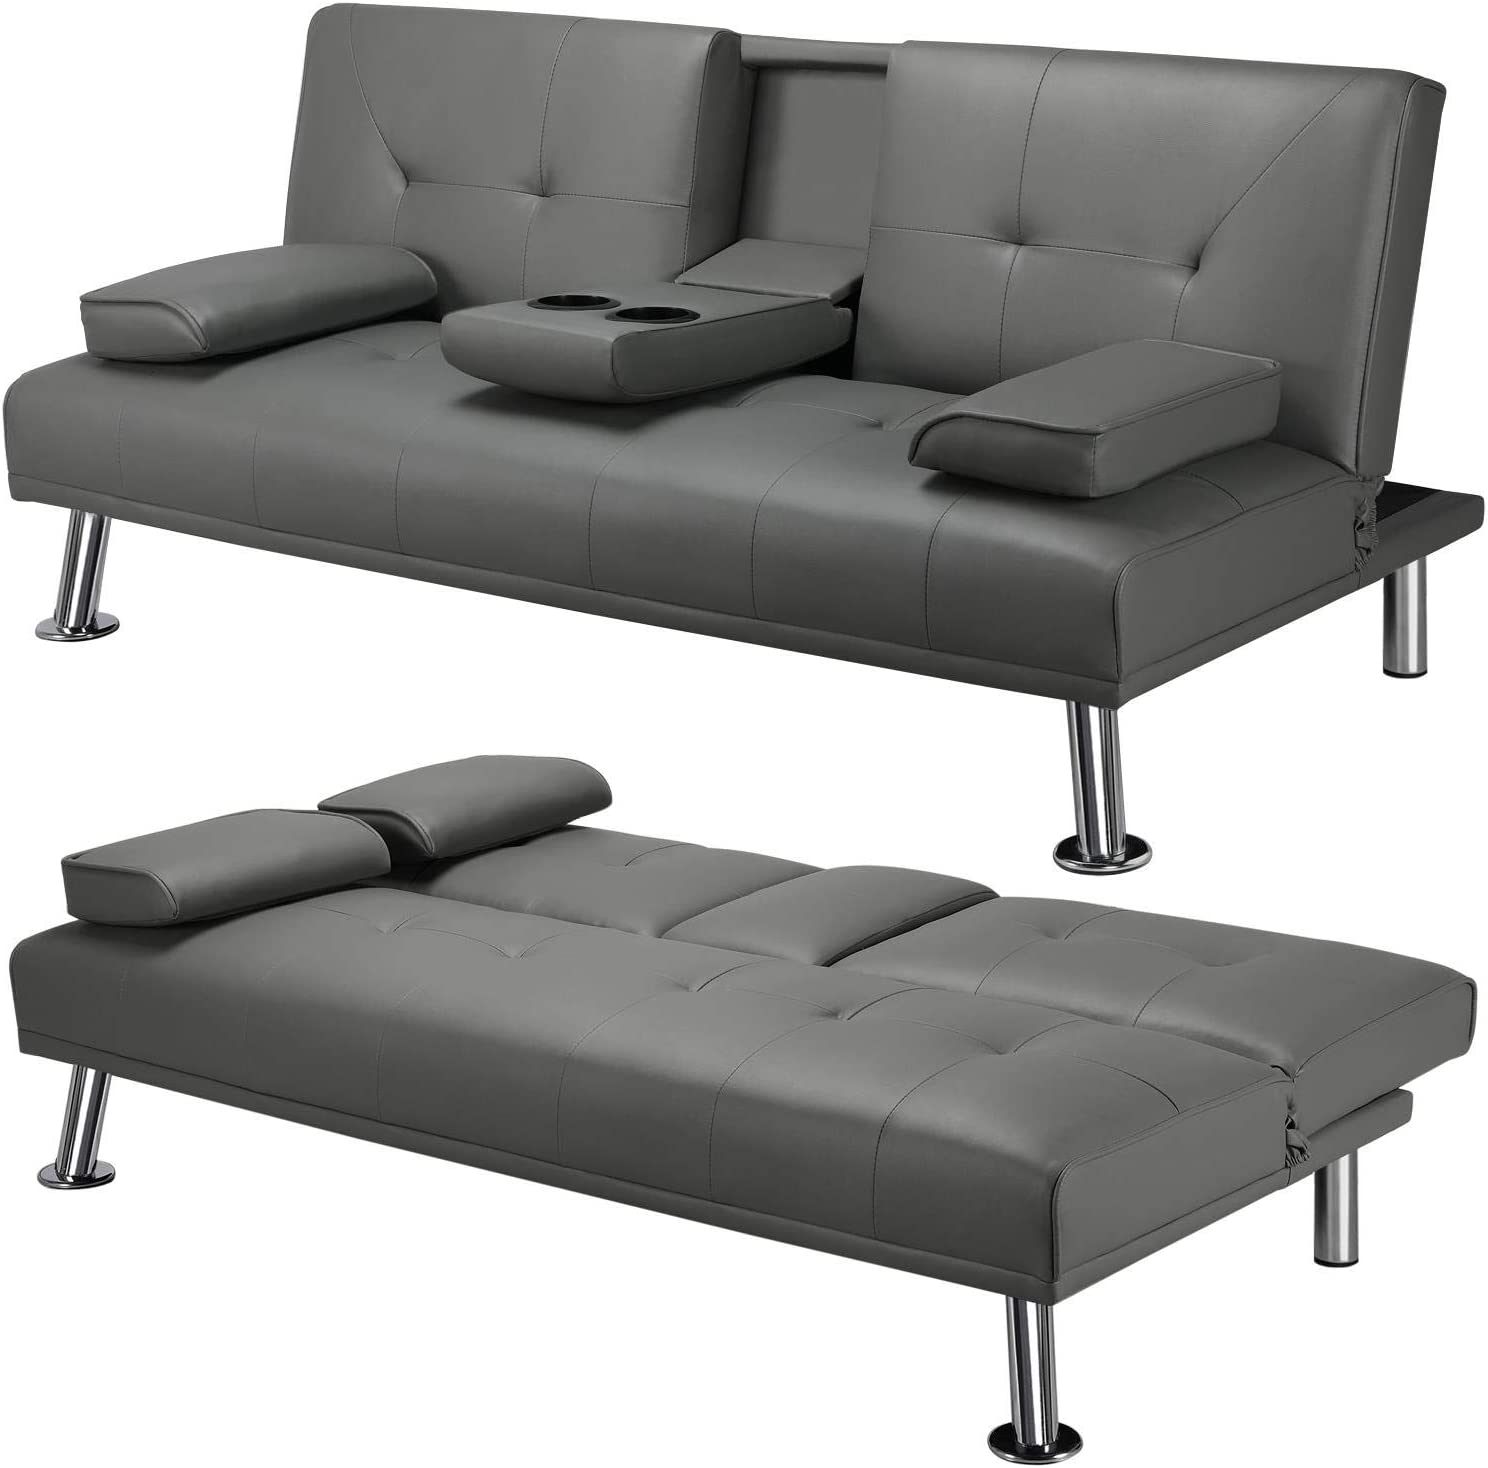 YAHEETECH Living Room Furniture Set Faux Leather Sleeper Modern Style Folding Recliner with Cup Holders Convertible Loveseat Gray